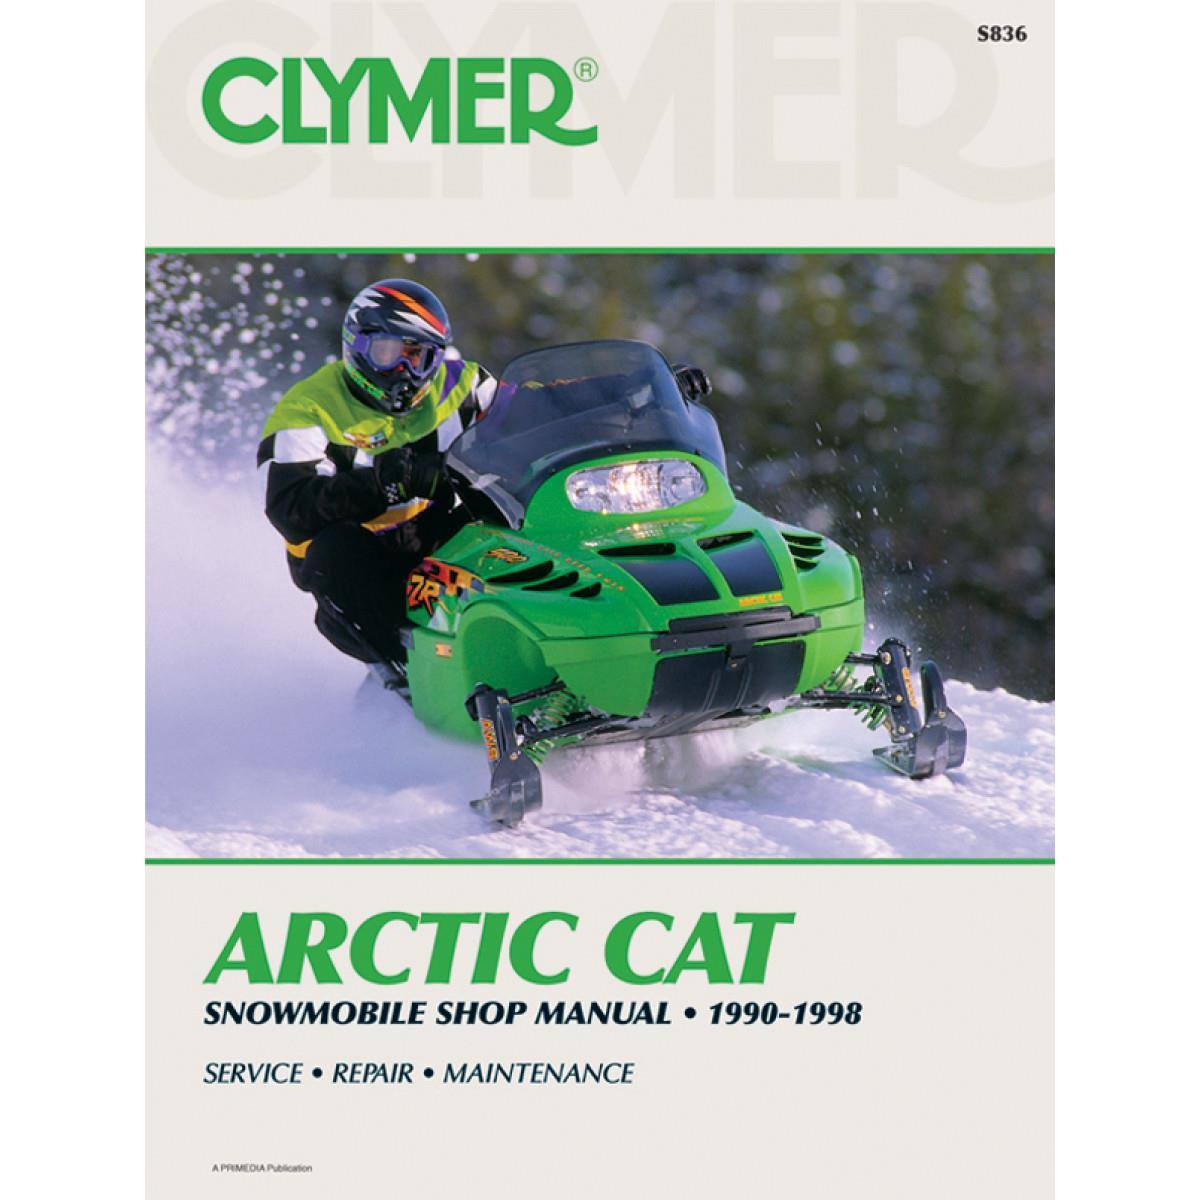 1989 1993 arctic cat 650 snowmobile master service manual